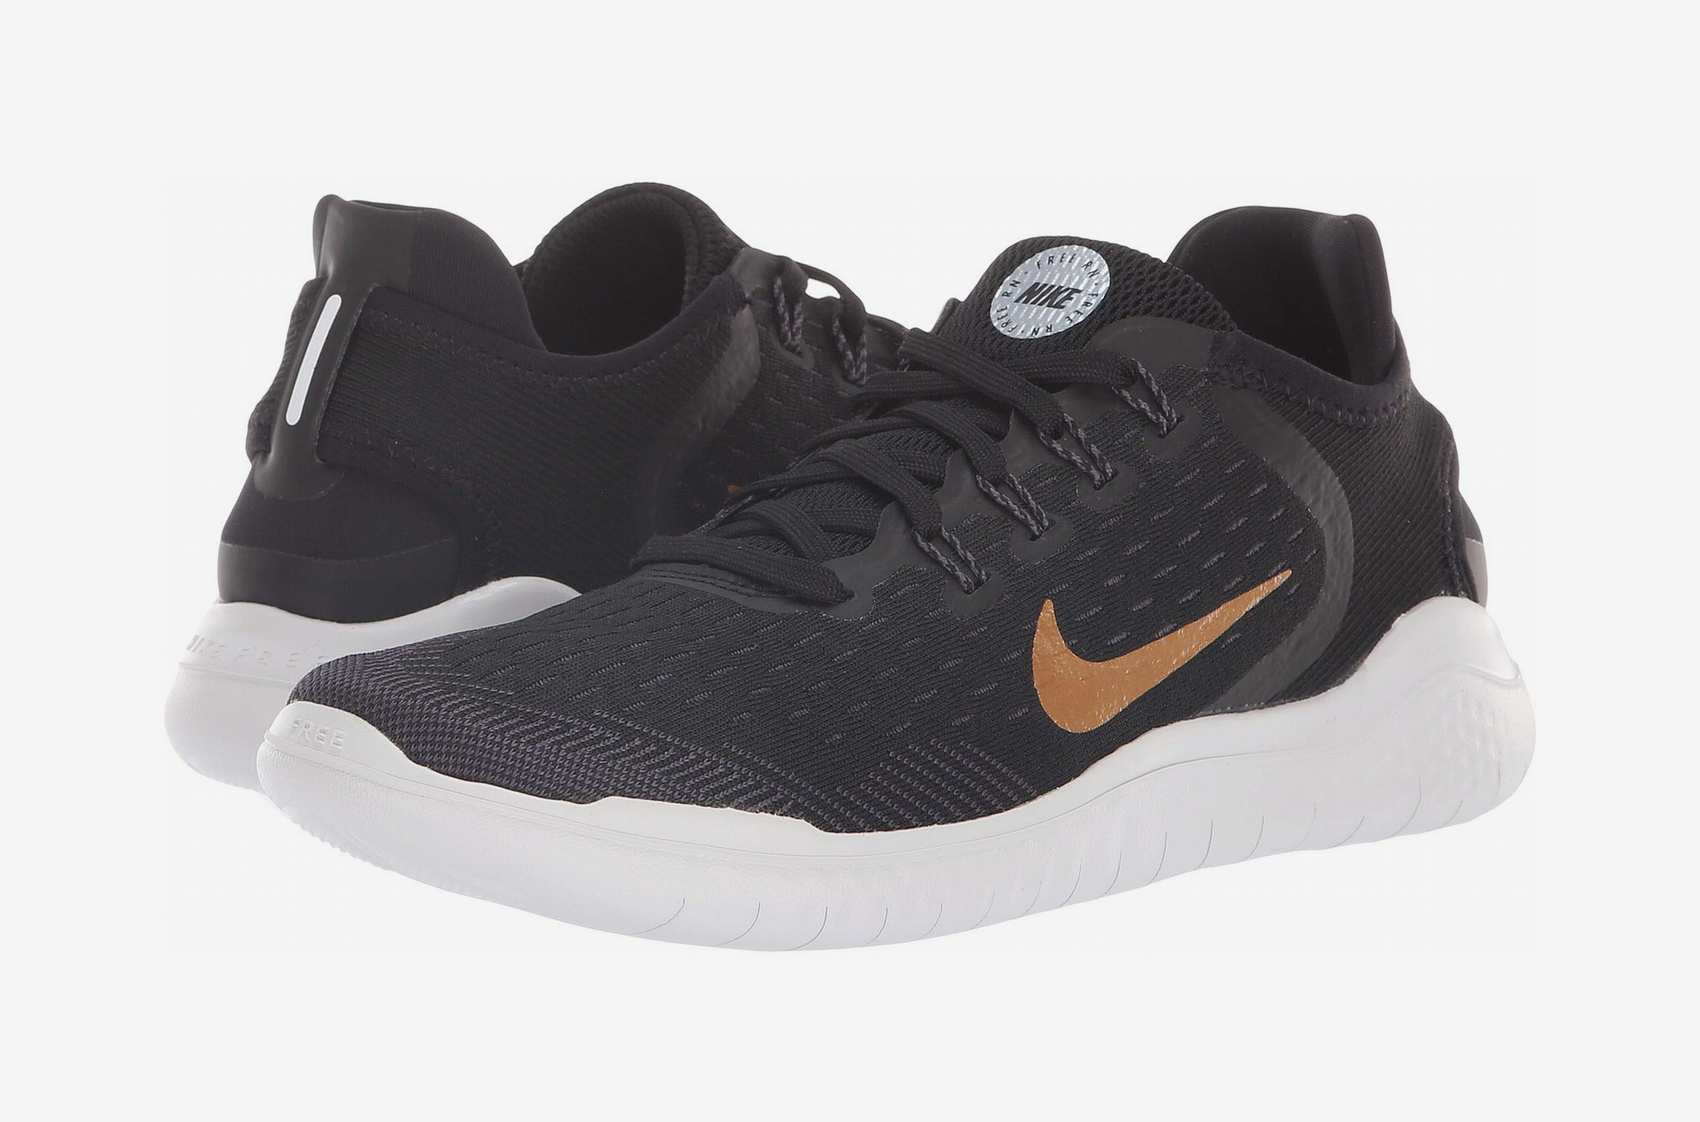 The best Nike shoes for women on Zappos, according to hyper